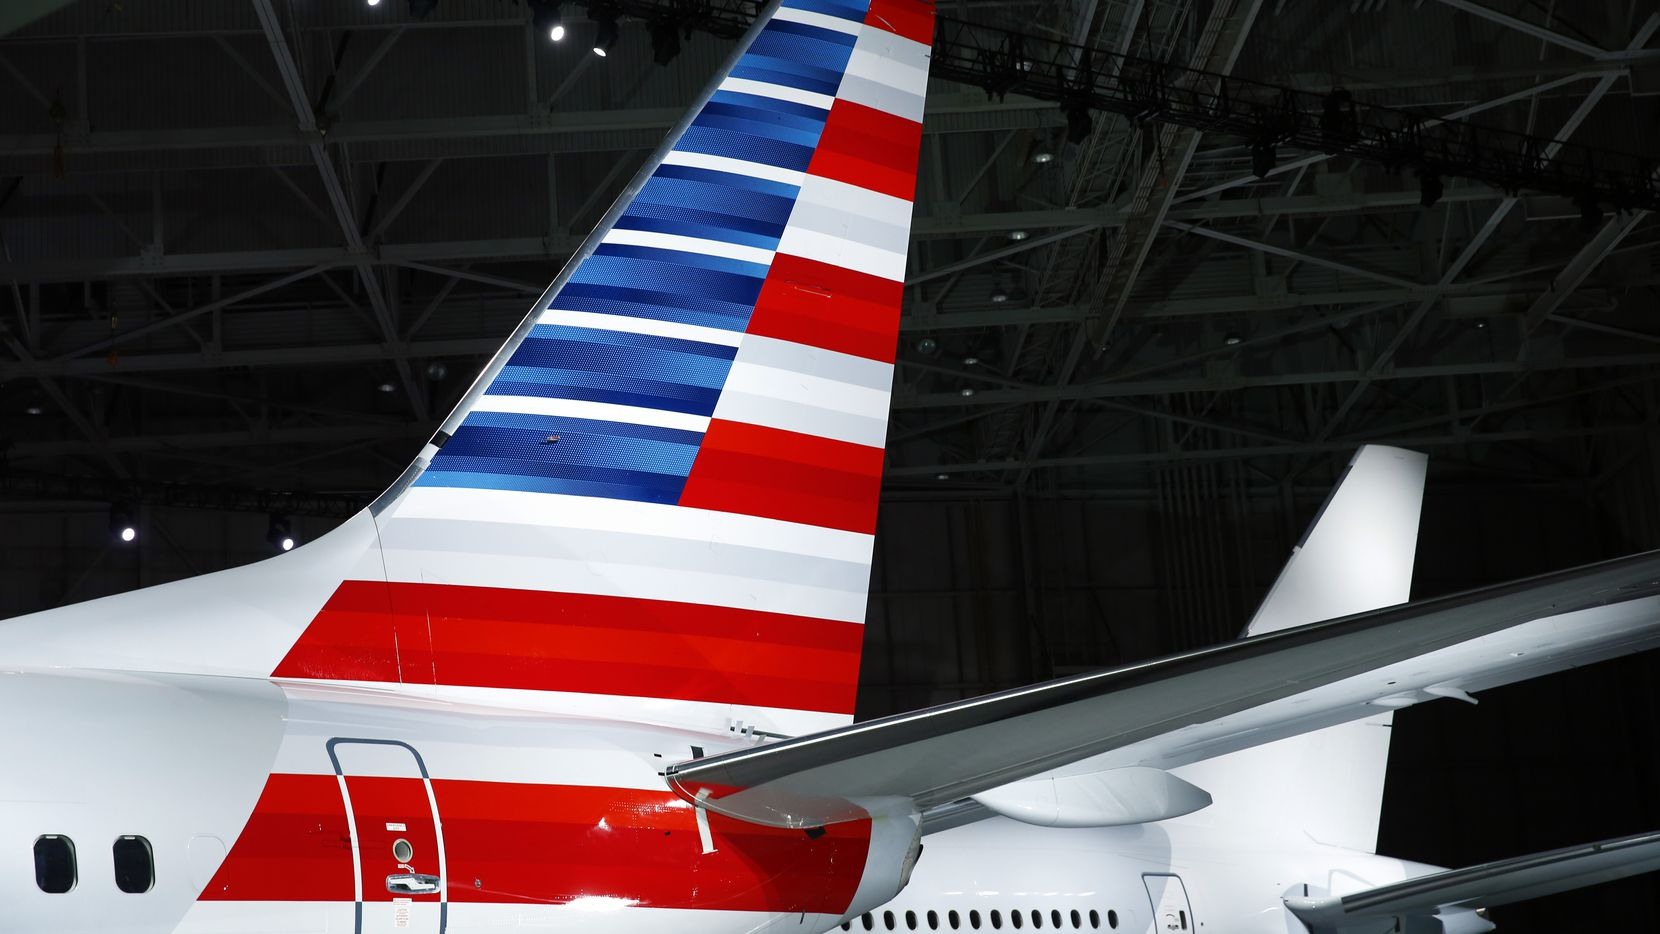 American Airlines Chairman and CEO Tom Horton unveiled the new company logo and exterior on their Boeing 737-800 inside an American hanger at Dallas Fort Worth International Airport, Thursday, January 17, 2013.